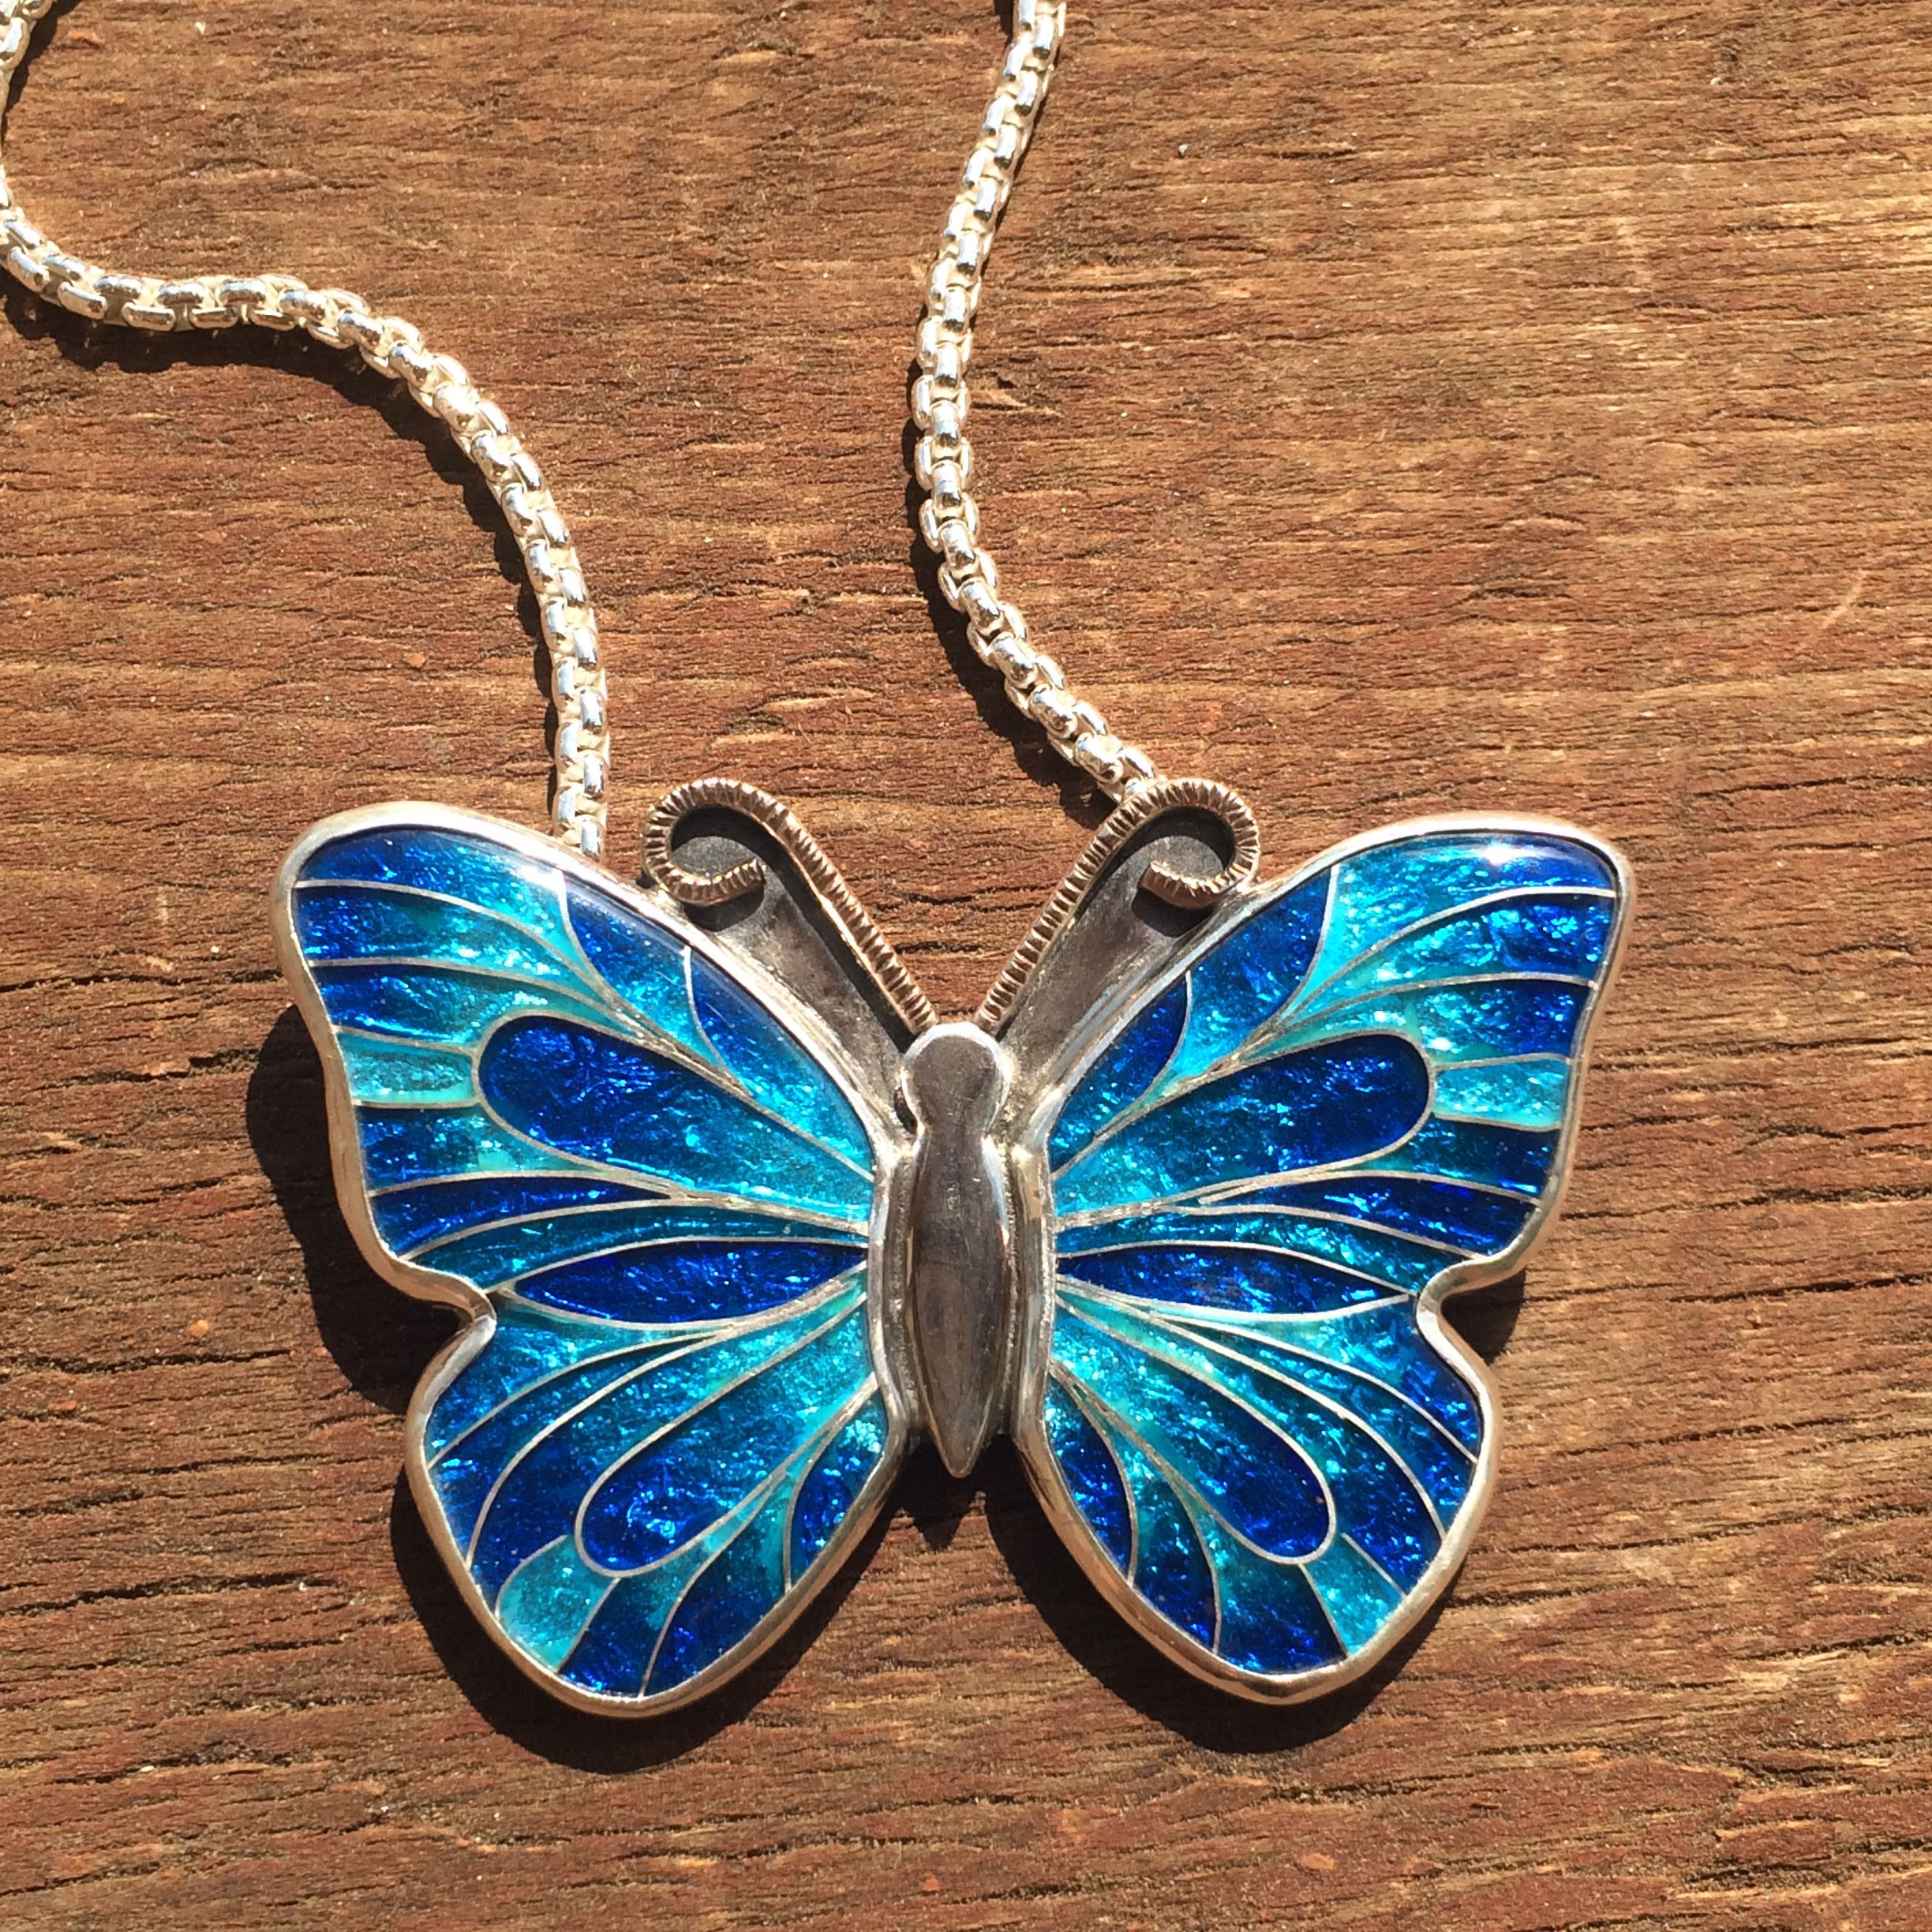 Hand Crafted Cloisonne Enamel Butterfly Necklace Blue